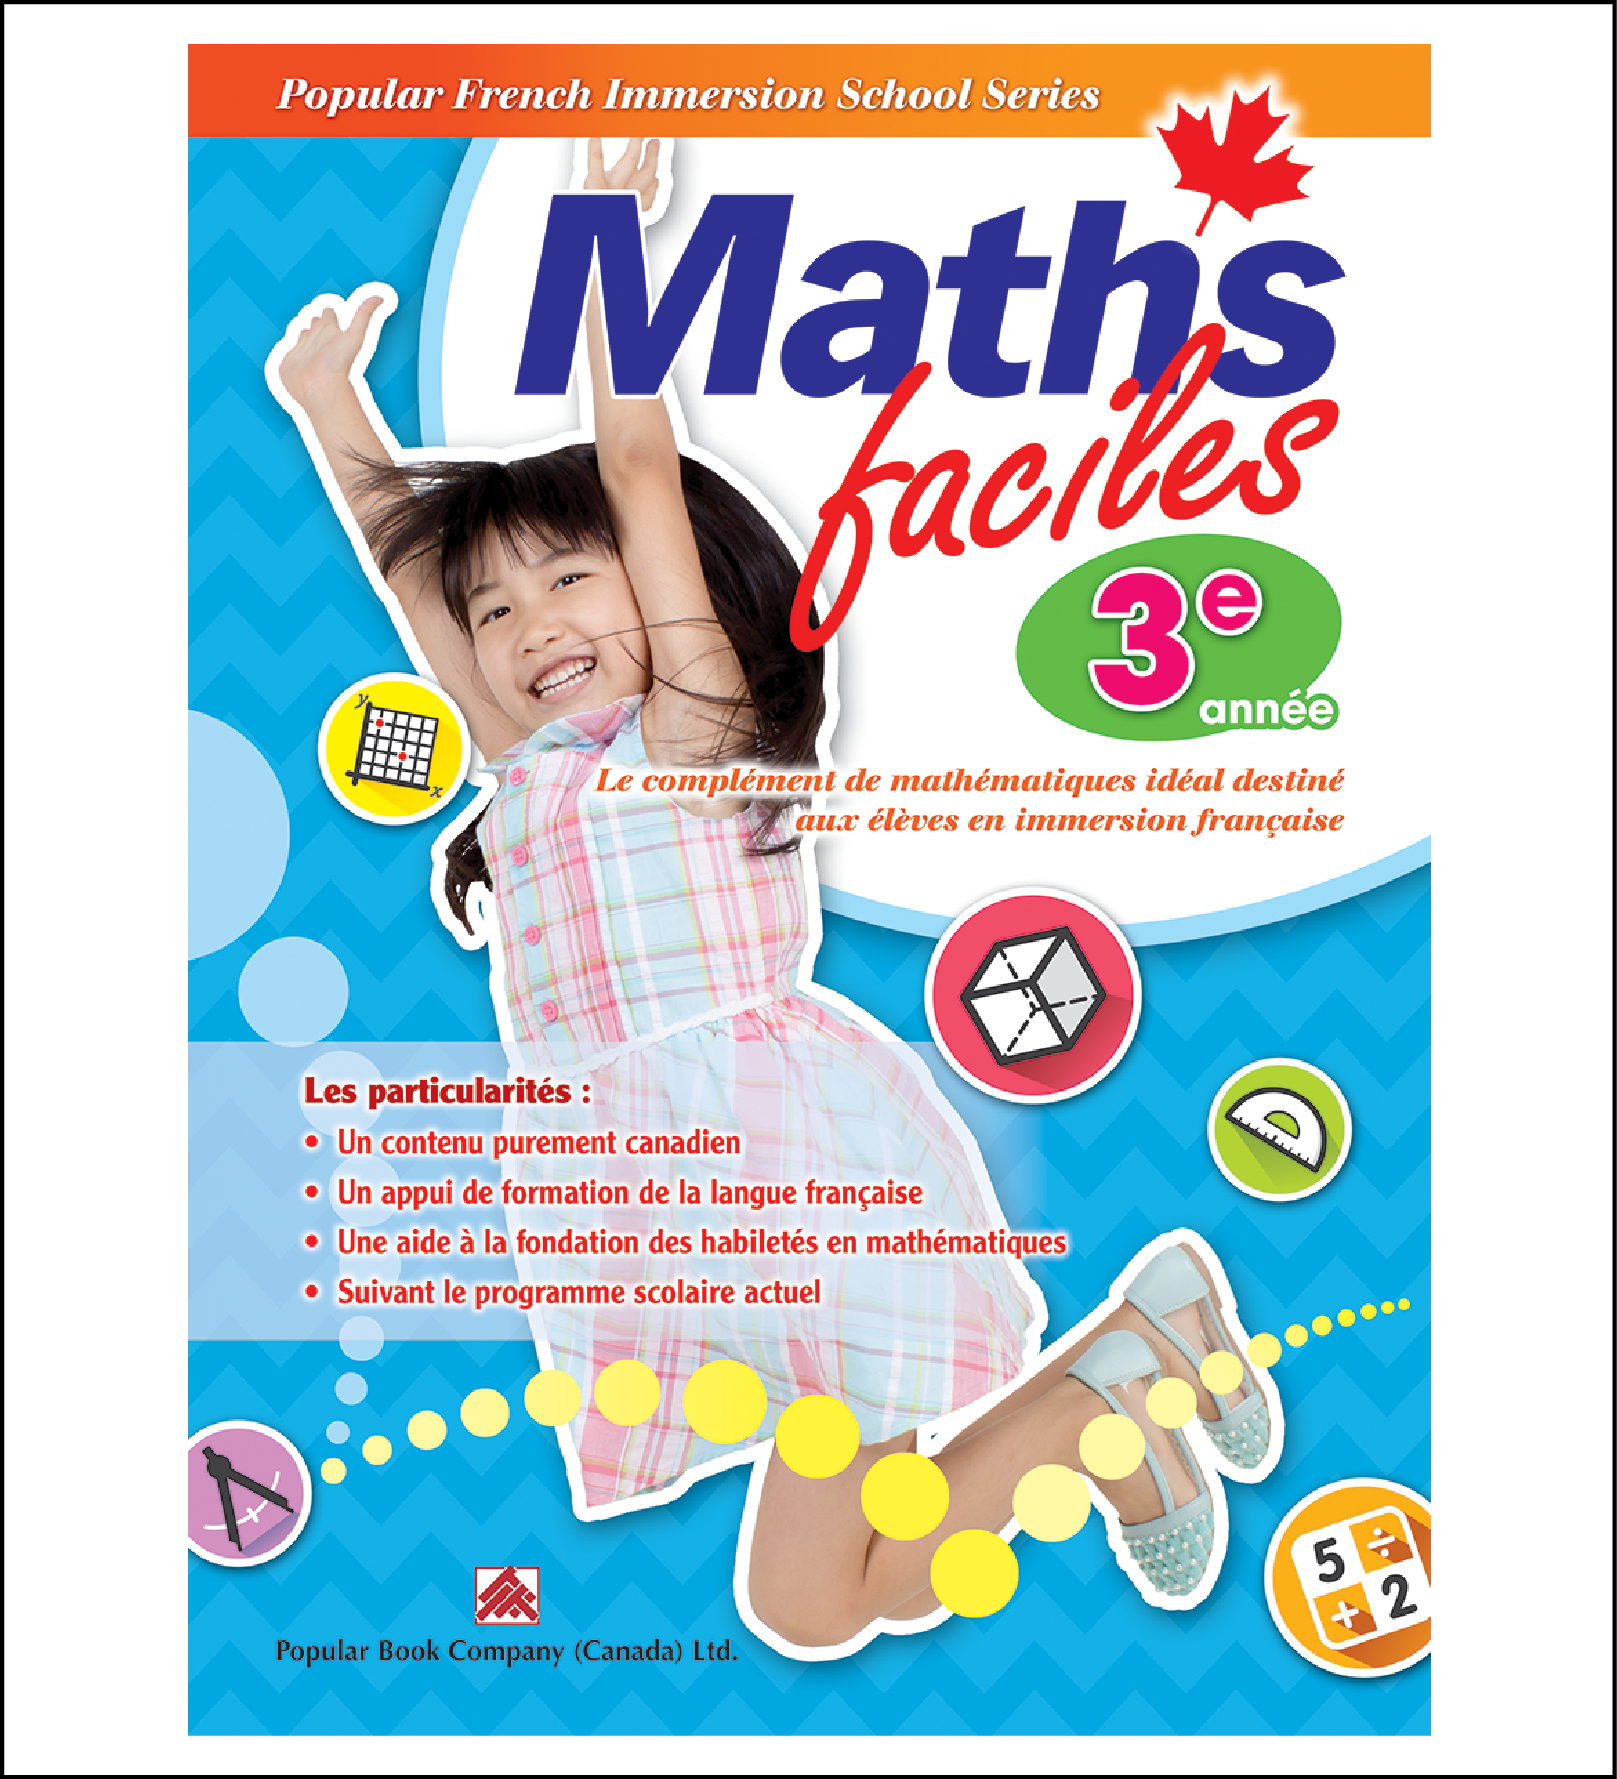 Canadian Curriculum Workbook for French Immersion School Maths faciles grade 3